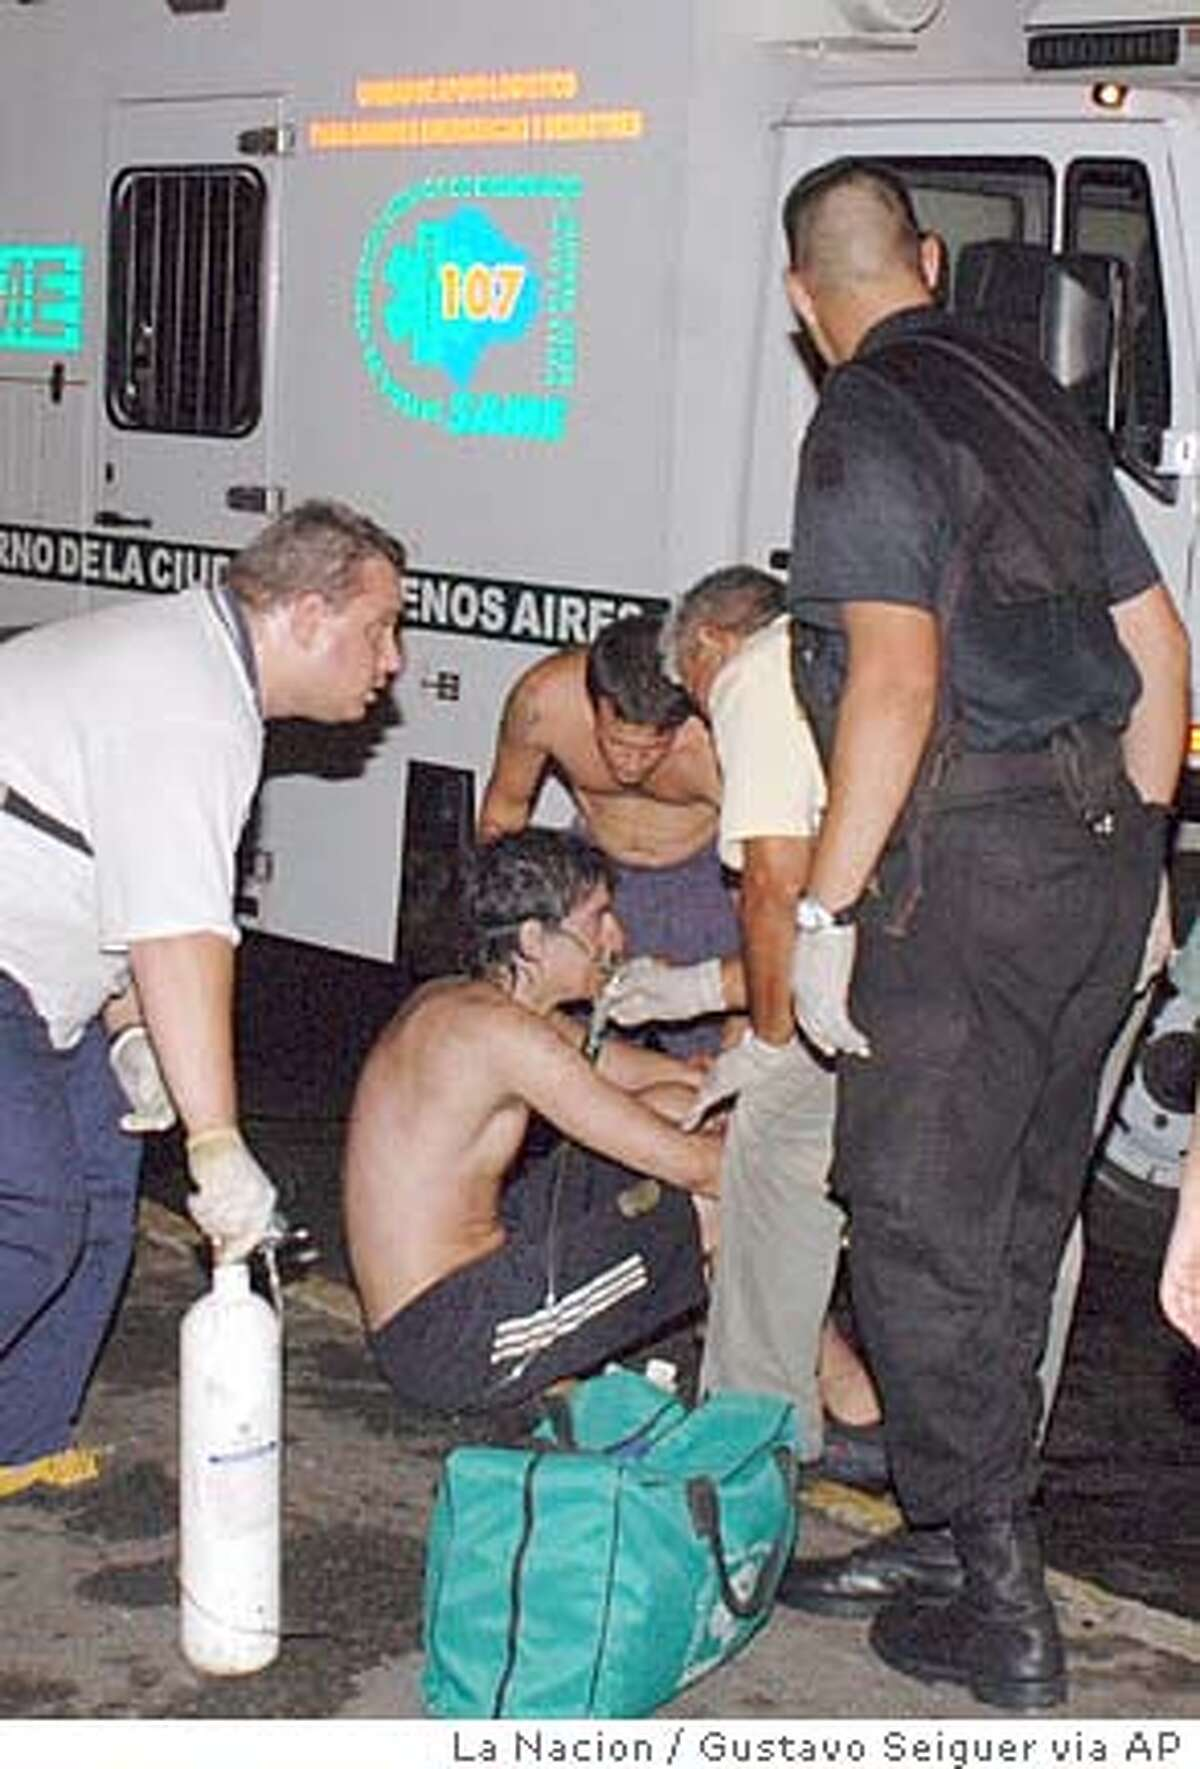 People injured in a nightclub fire are helped outside the nightclub in Buenos Aires, Argentina, Friday, Dec. 31, 2004. The fire swept through the crowded nightclub, killing at least nine people and injuring more than 200, police said Friday. The blaze broke out during a rock concert at a popular nightclub. (AP Photo/La Nacion, Gustavo Seiguer) **Buenos Aires Out**